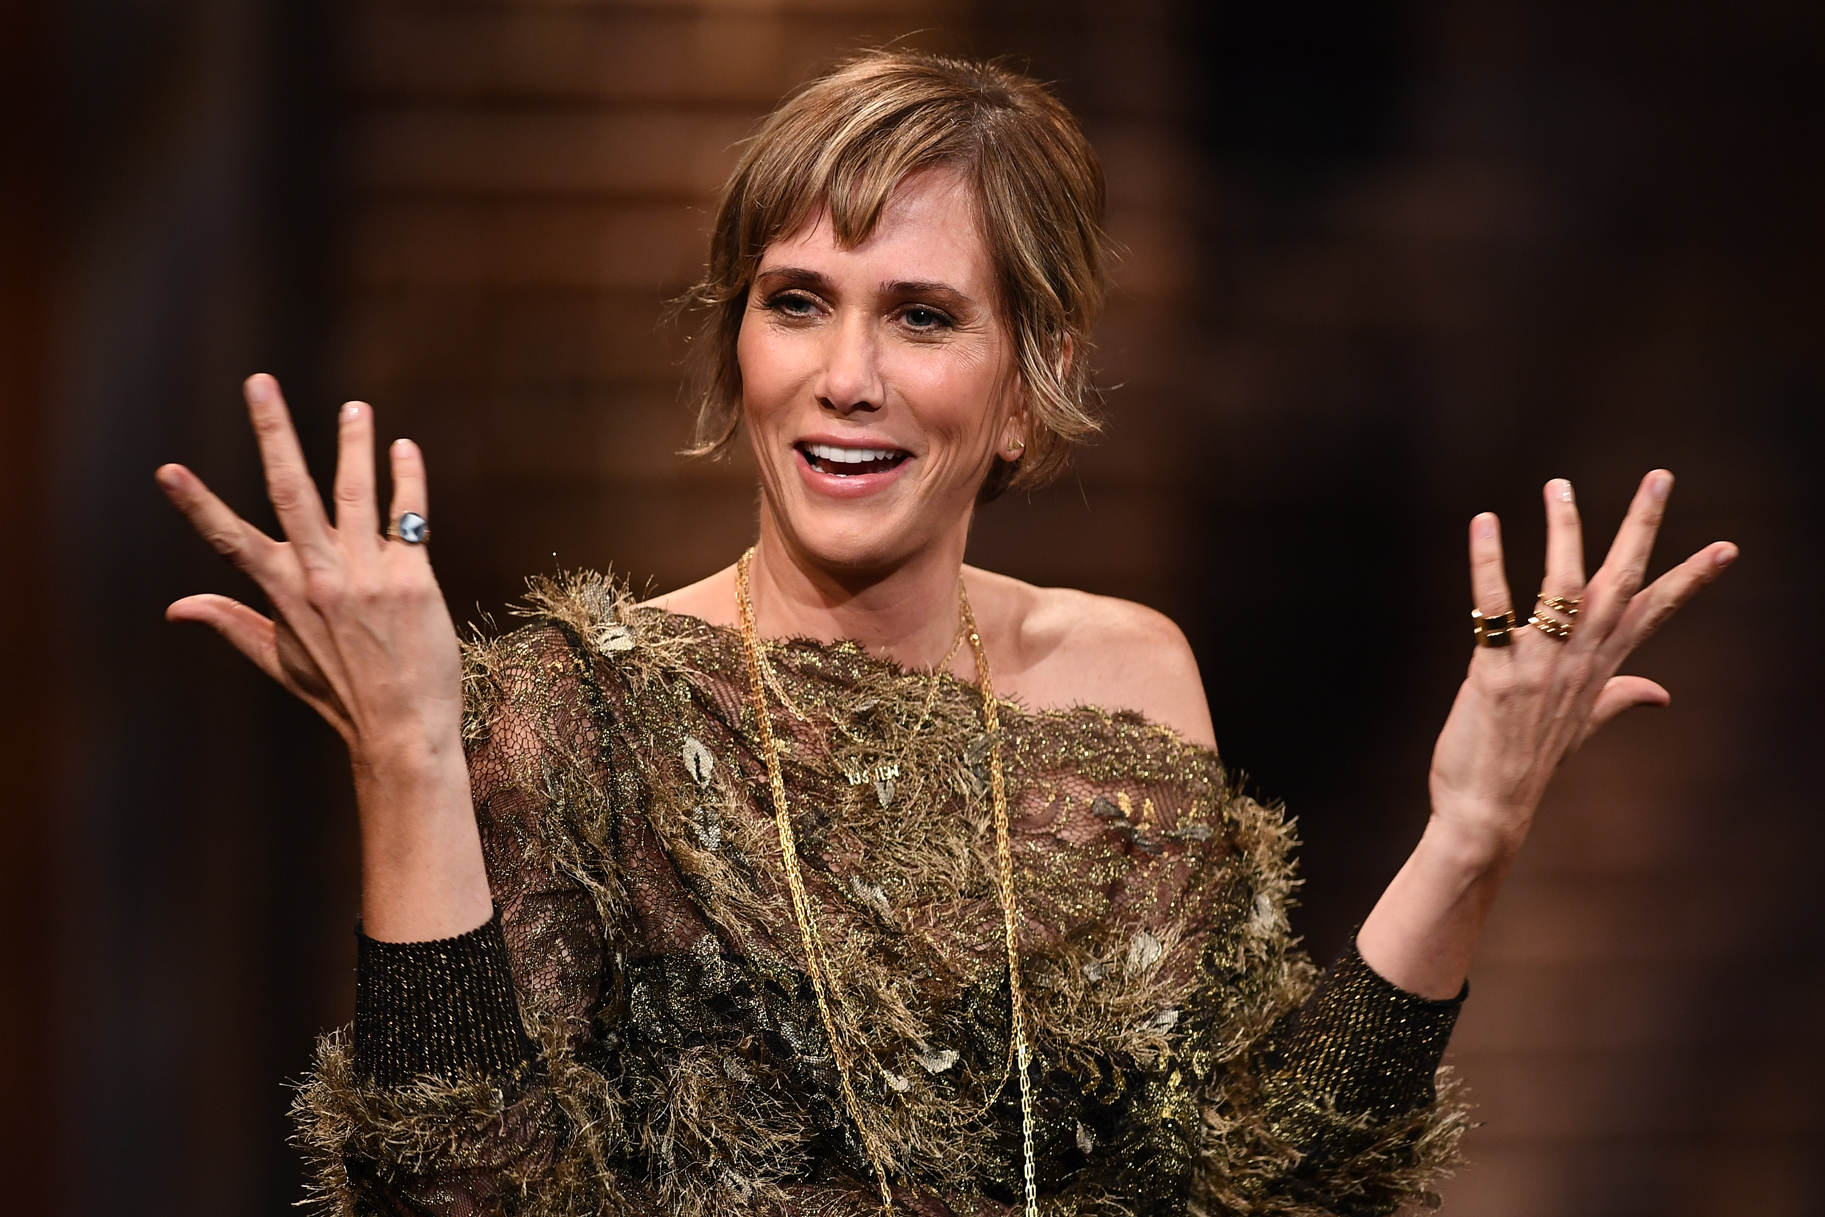 Kristen Wiig facts